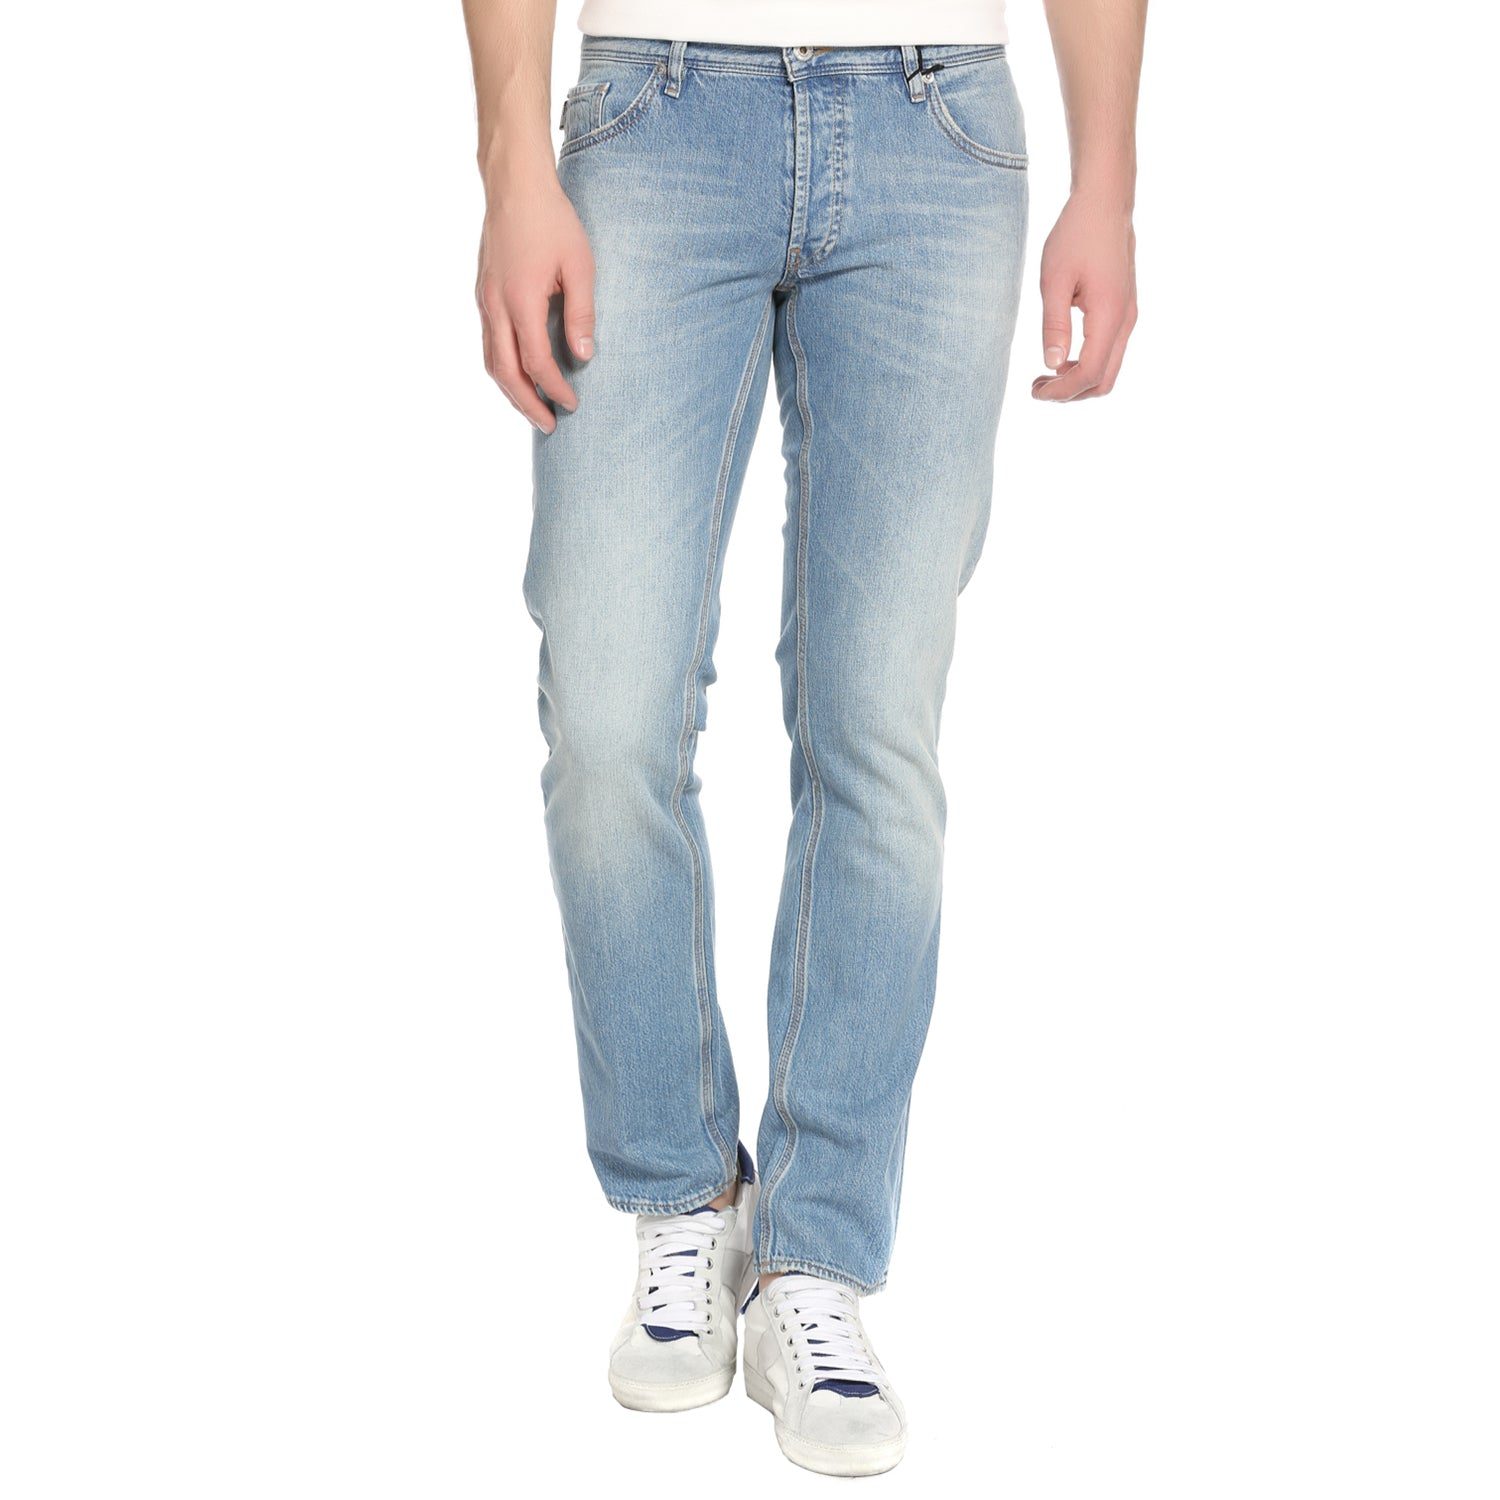 Love Moschino Light Wash Denim Jeans